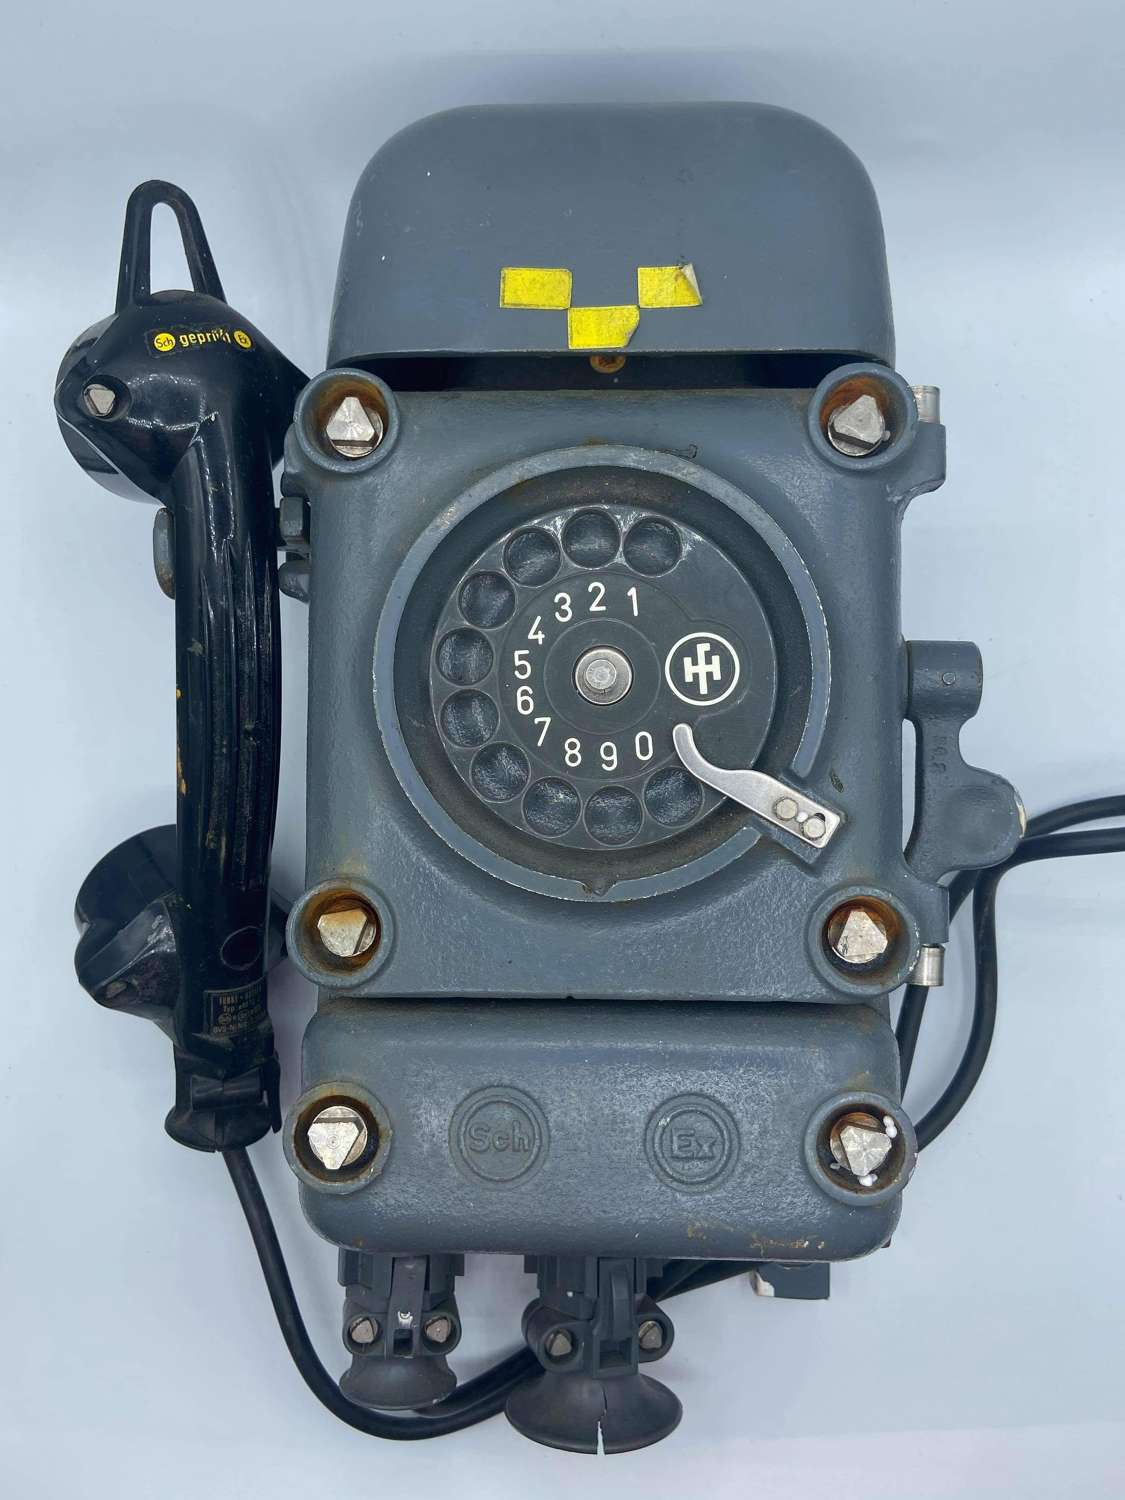 1950s West German Army Armoured Bunker Wall Phone Type DFWT